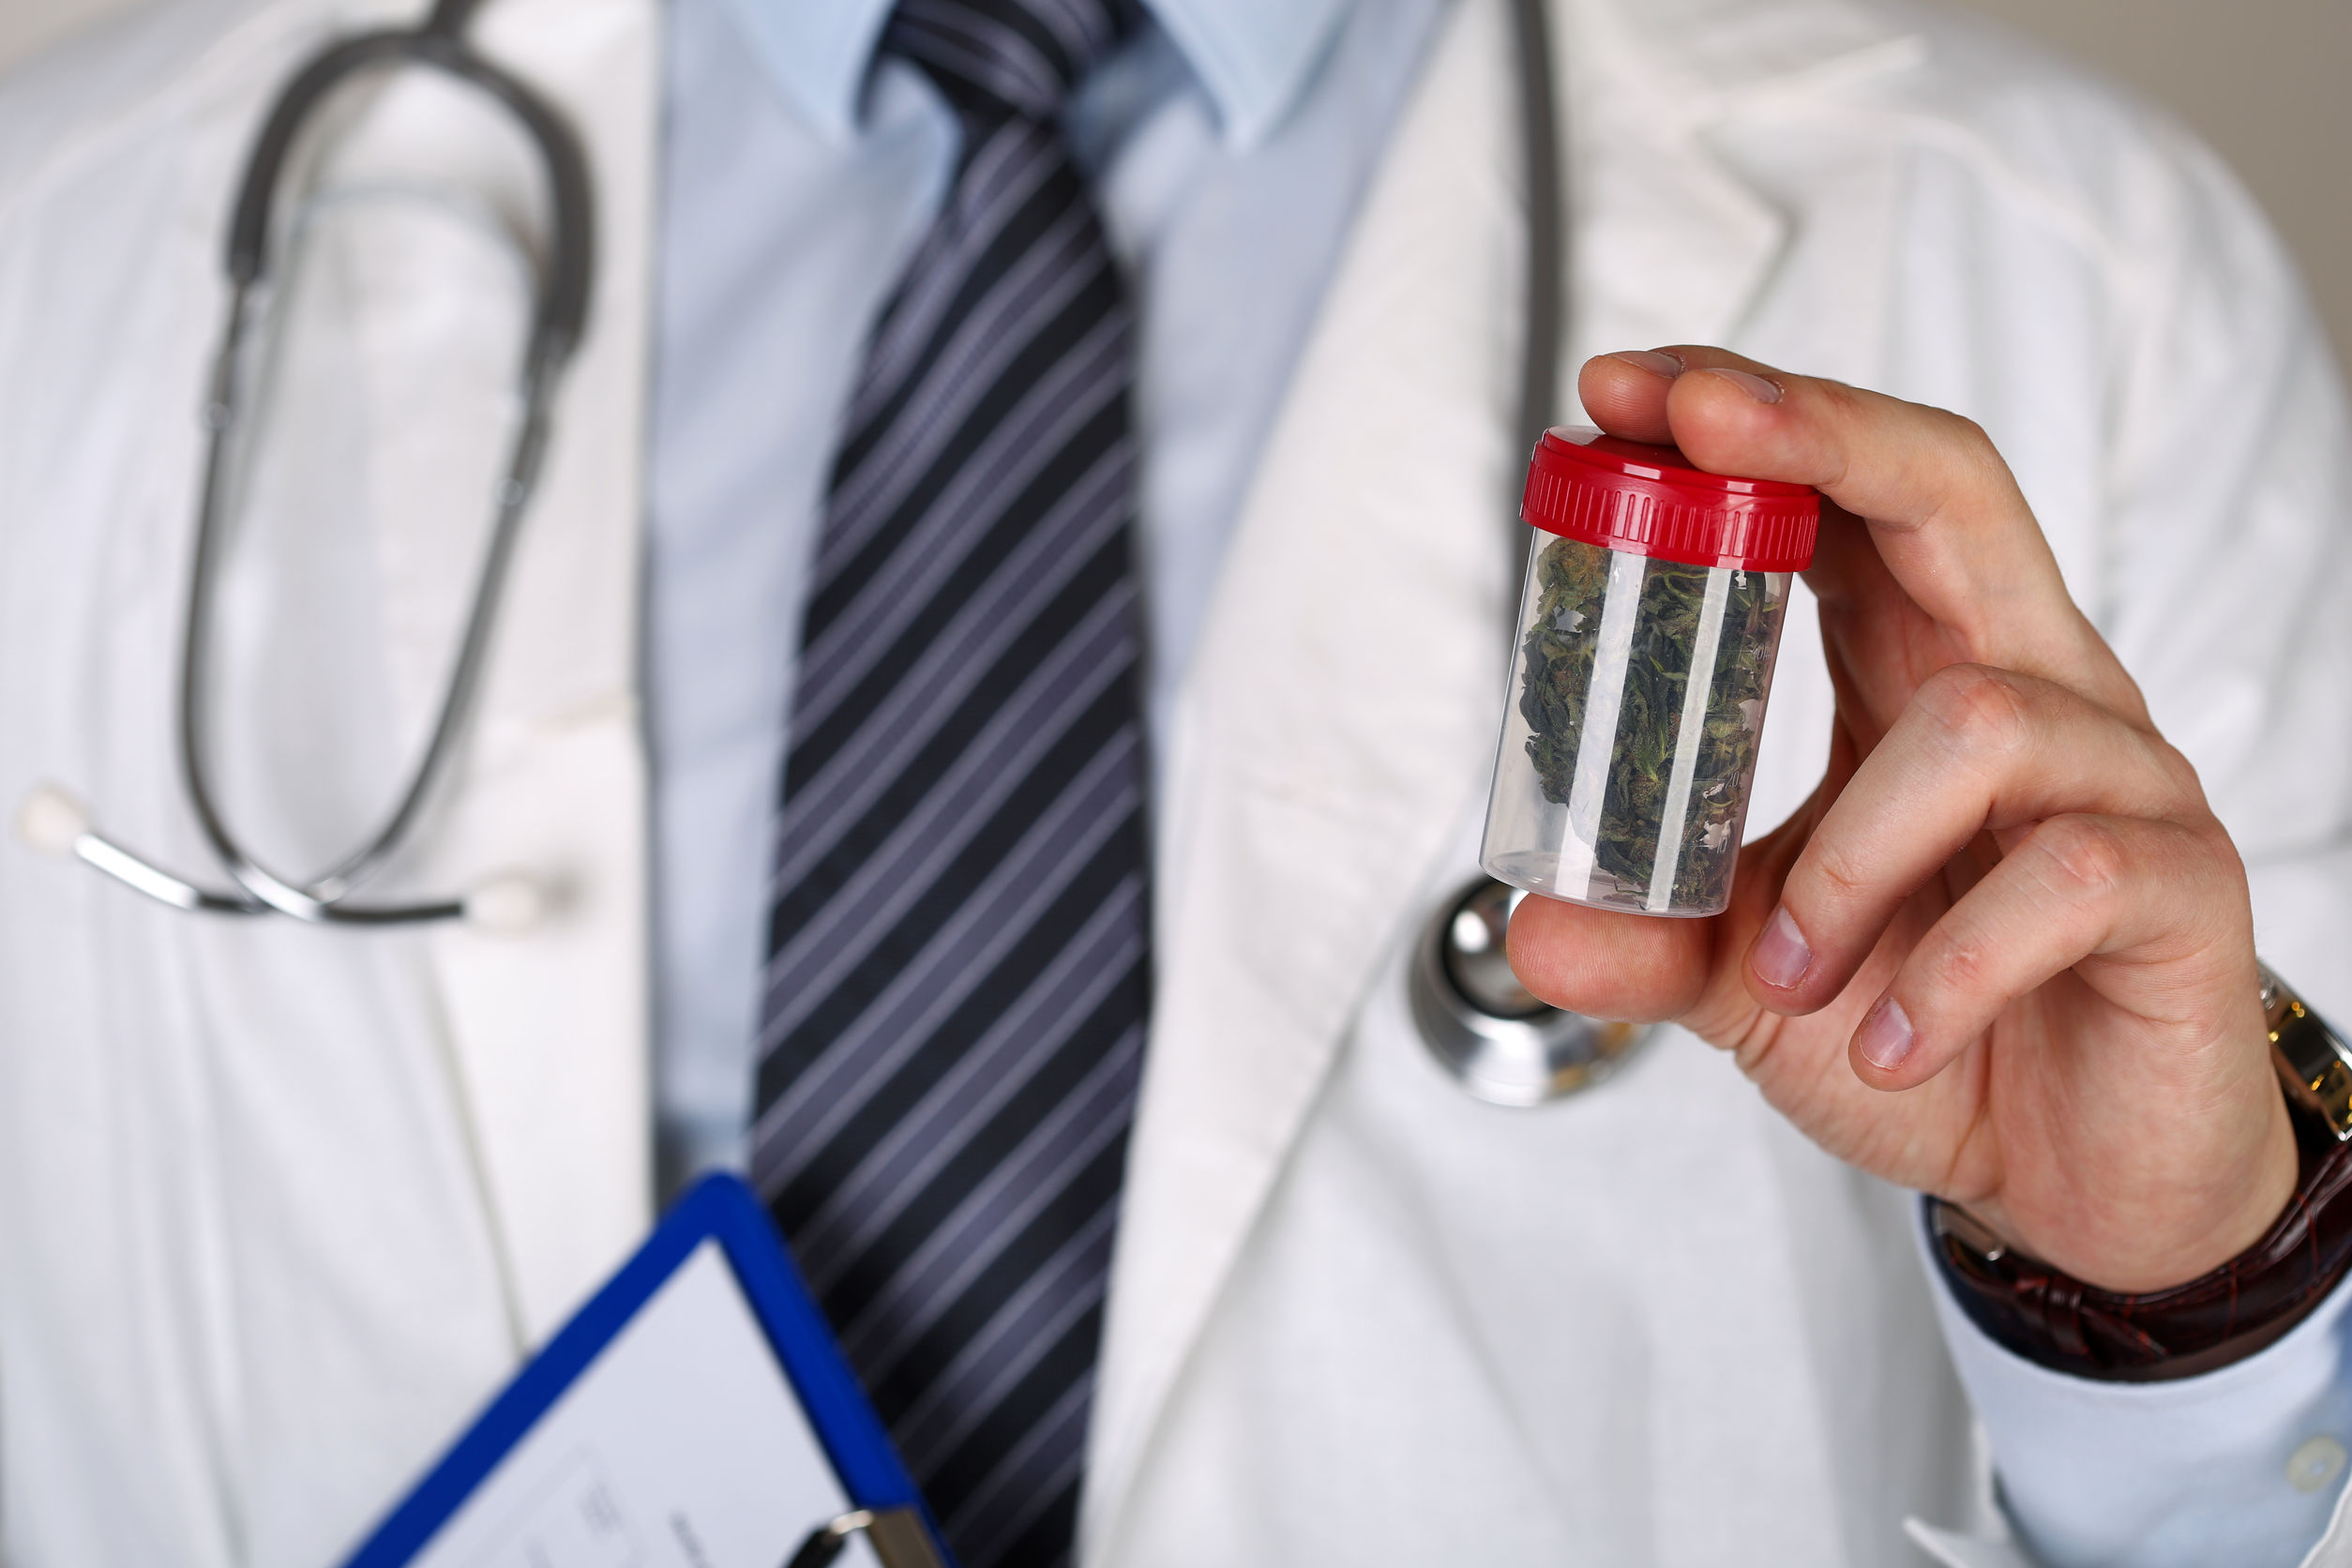 male medicine doctor hand holding and offering to patient medical marijuana in jar.